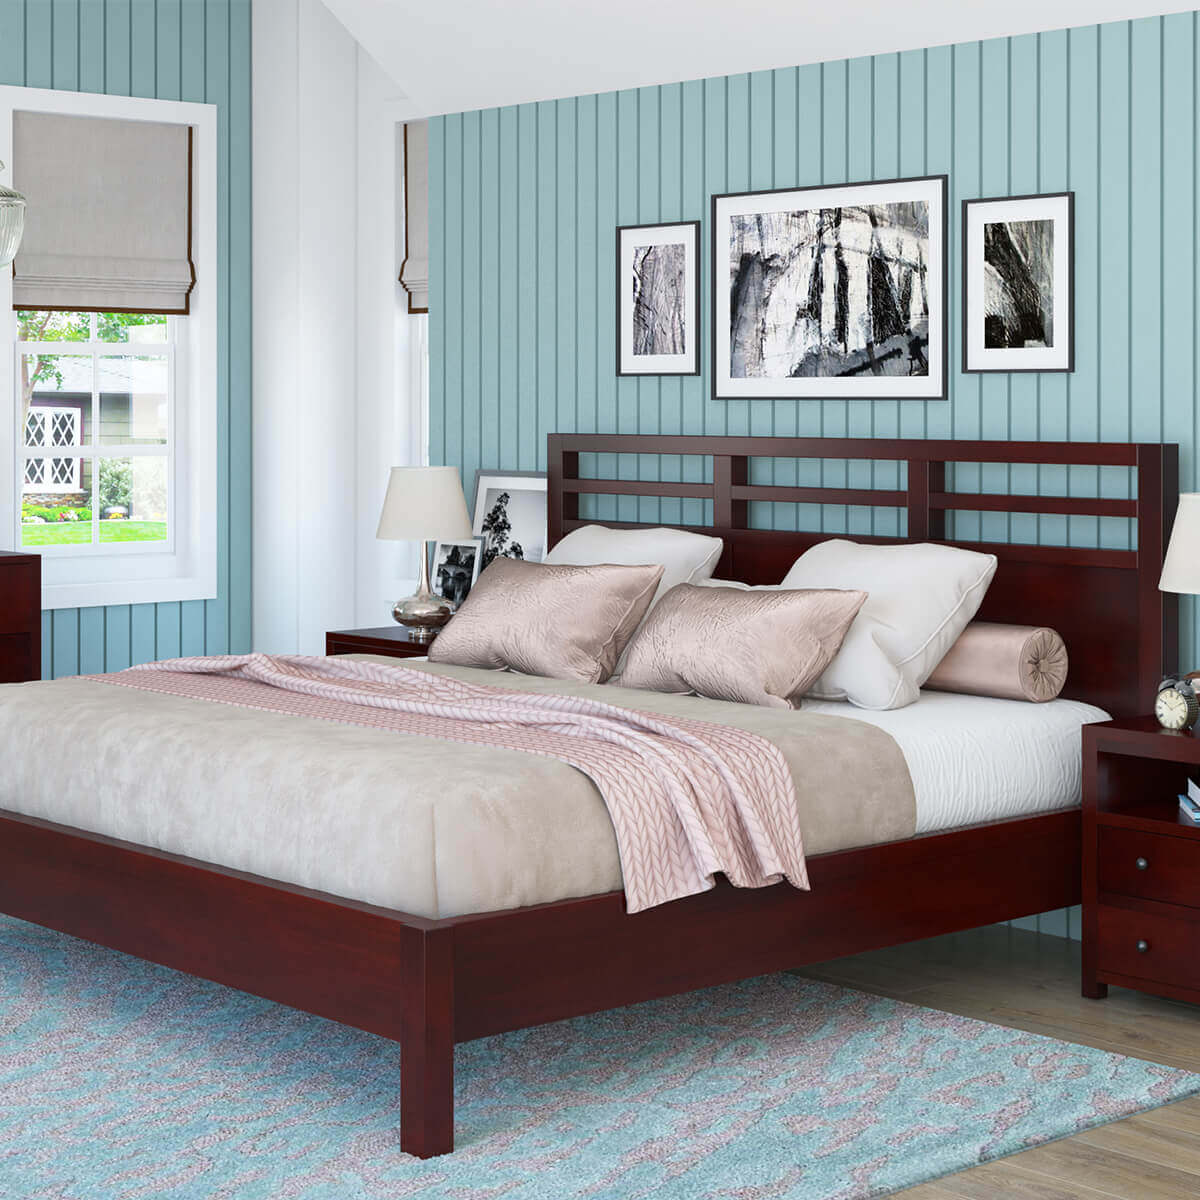 Andalusia Contemporary Solid Mahogany Wood Platform Bed Frame